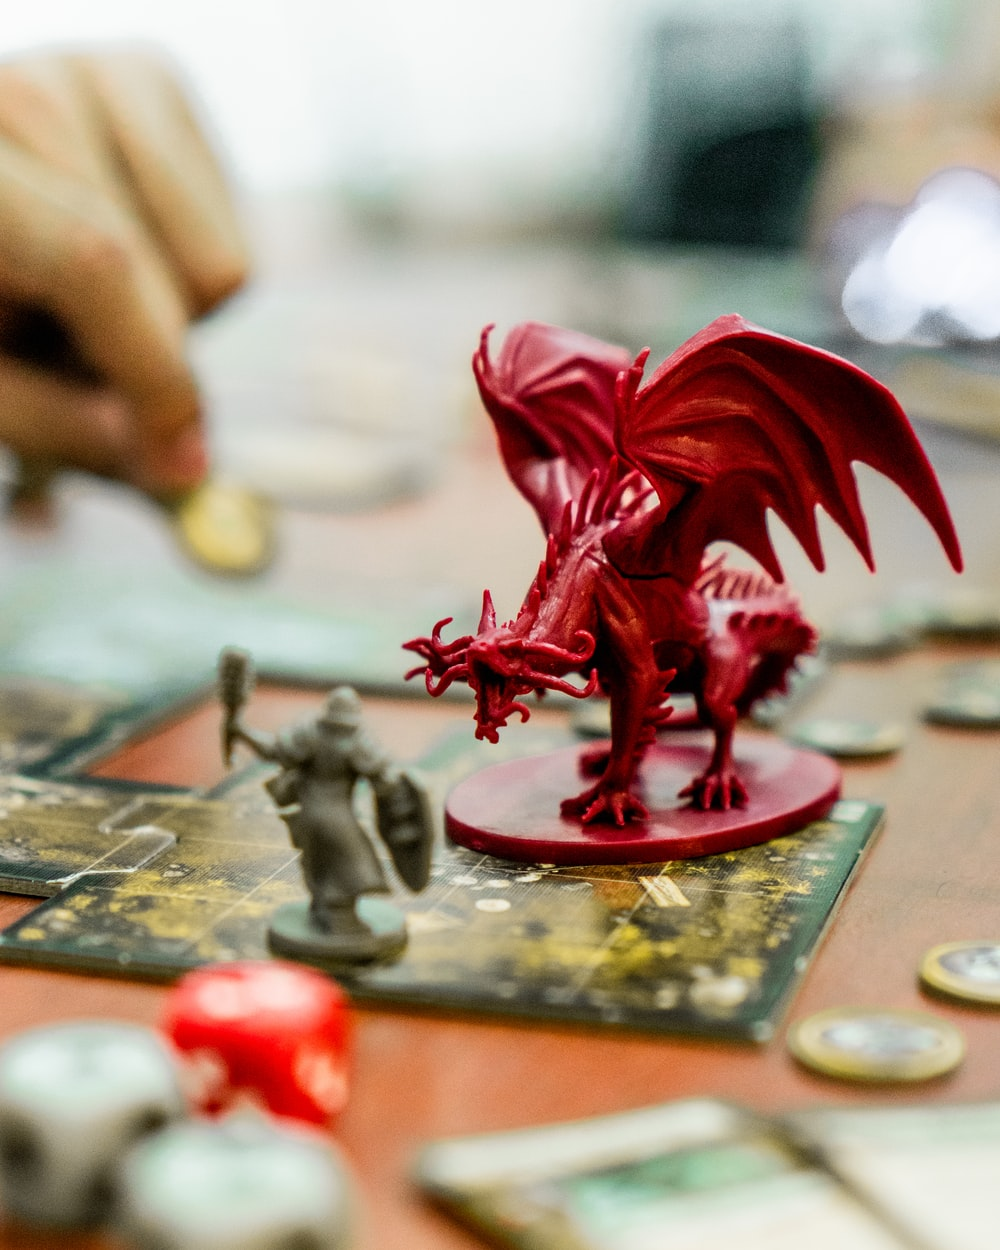 red dragon action figure on table